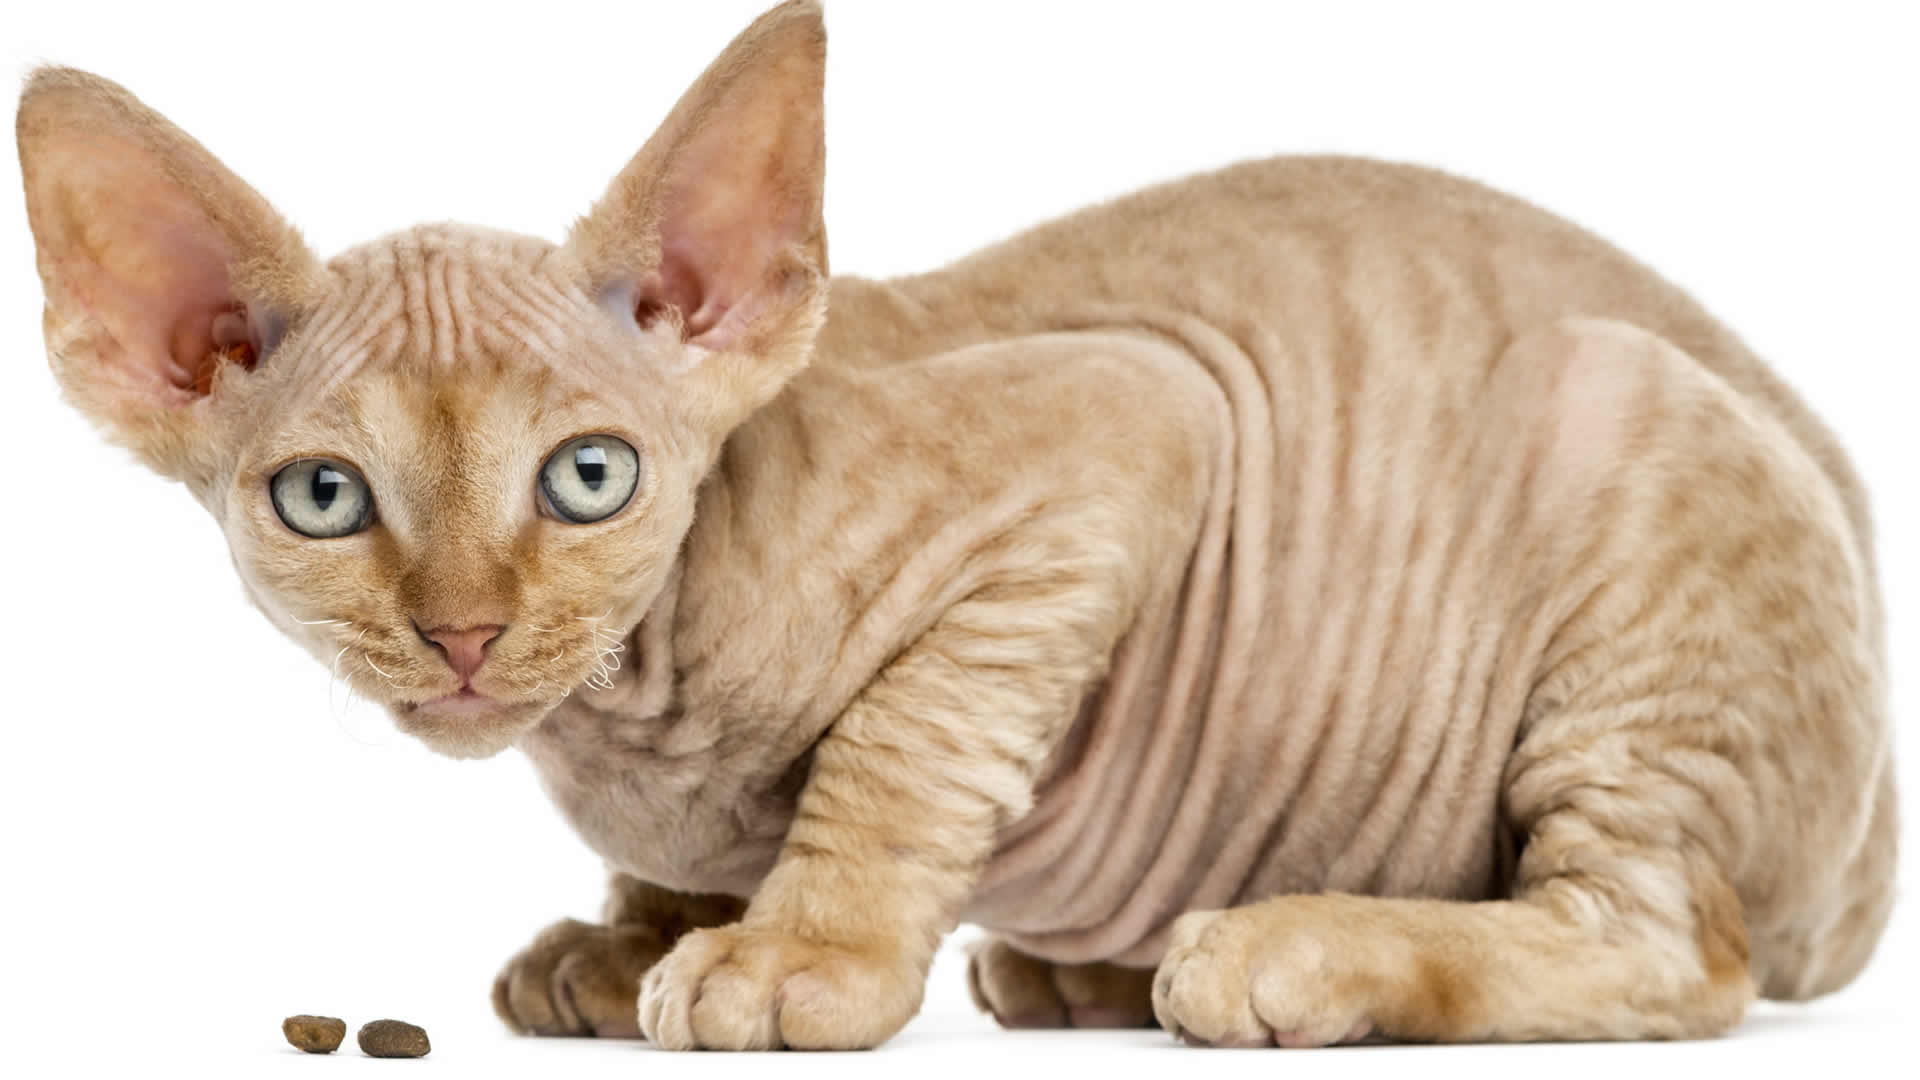 Devon Rex coat is short and wavy rather than curly